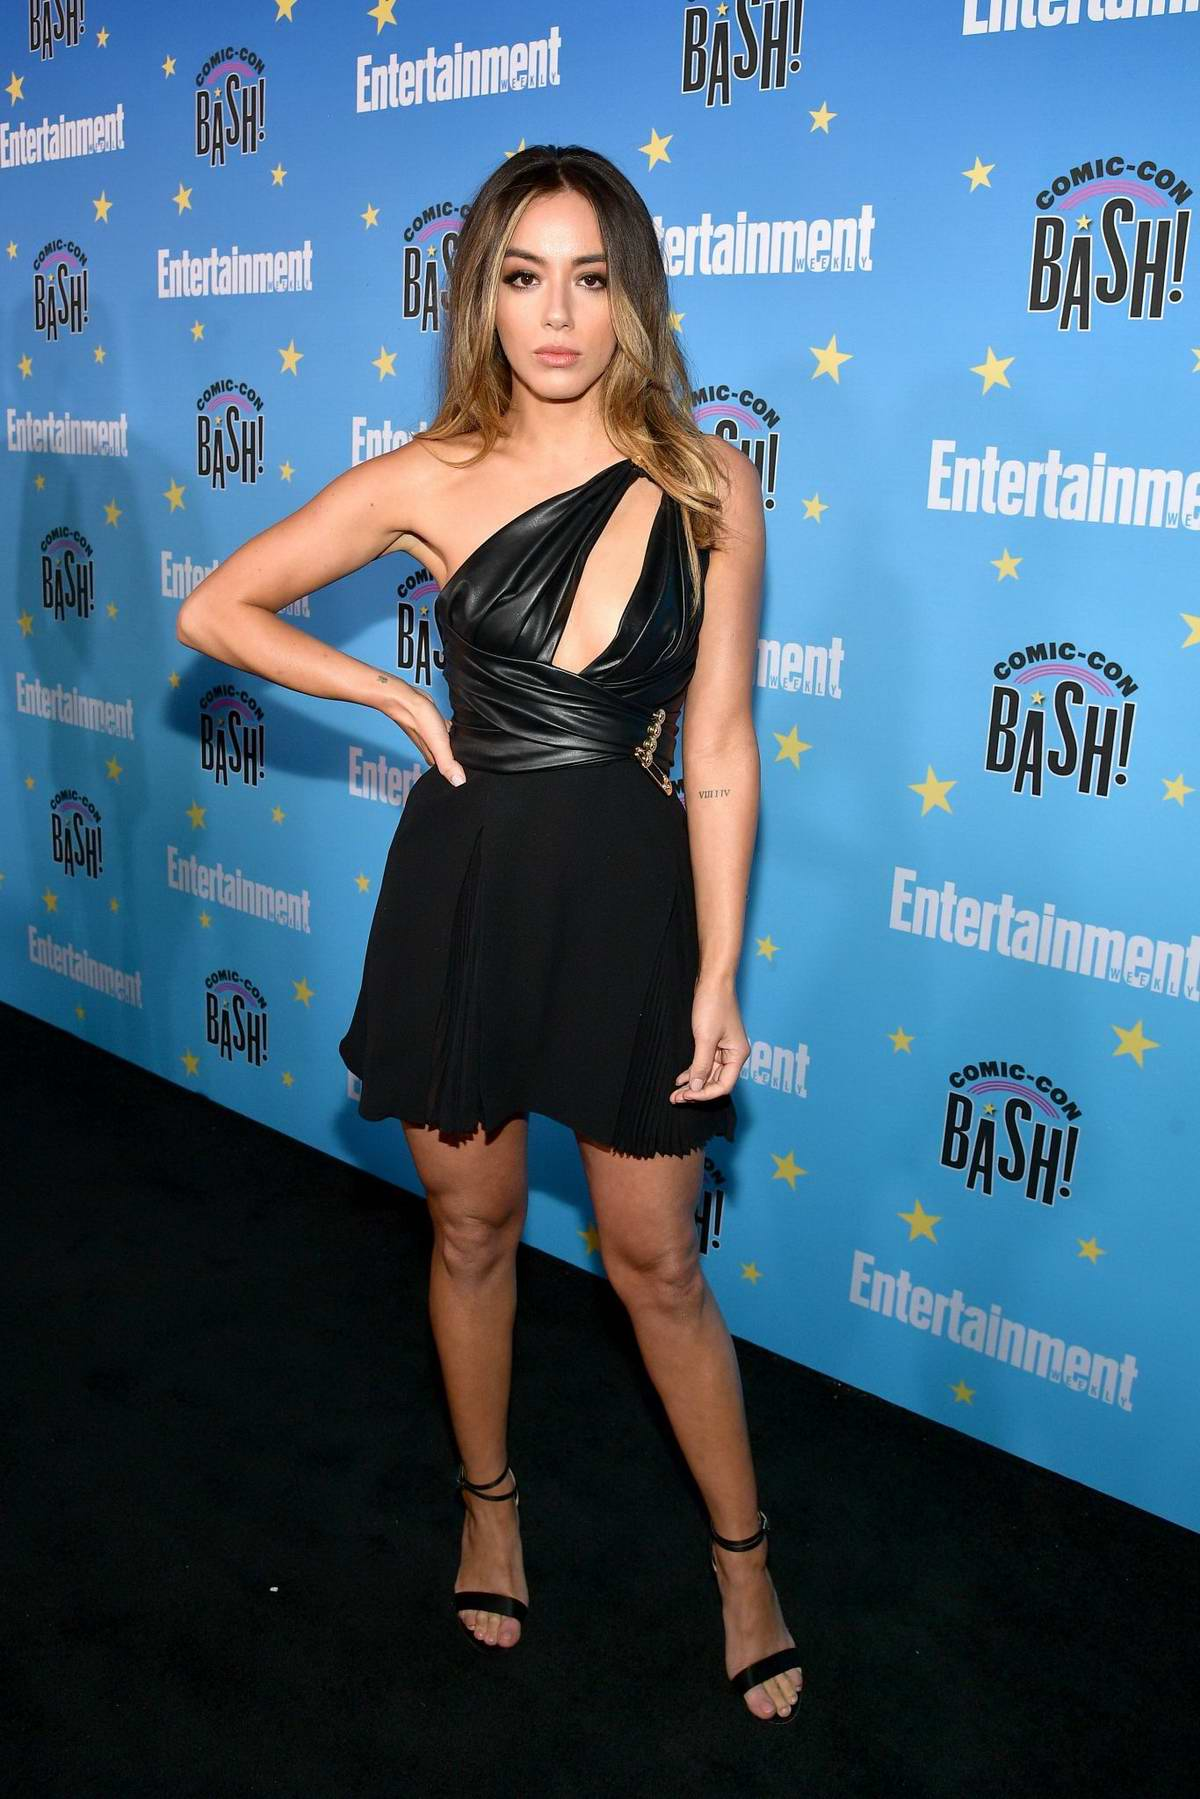 Chloe Bennet attends Entertainment Weekly's 2019 Comic-Con Bash held at FLOAT, Hard Rock Hotel in San Diego, California